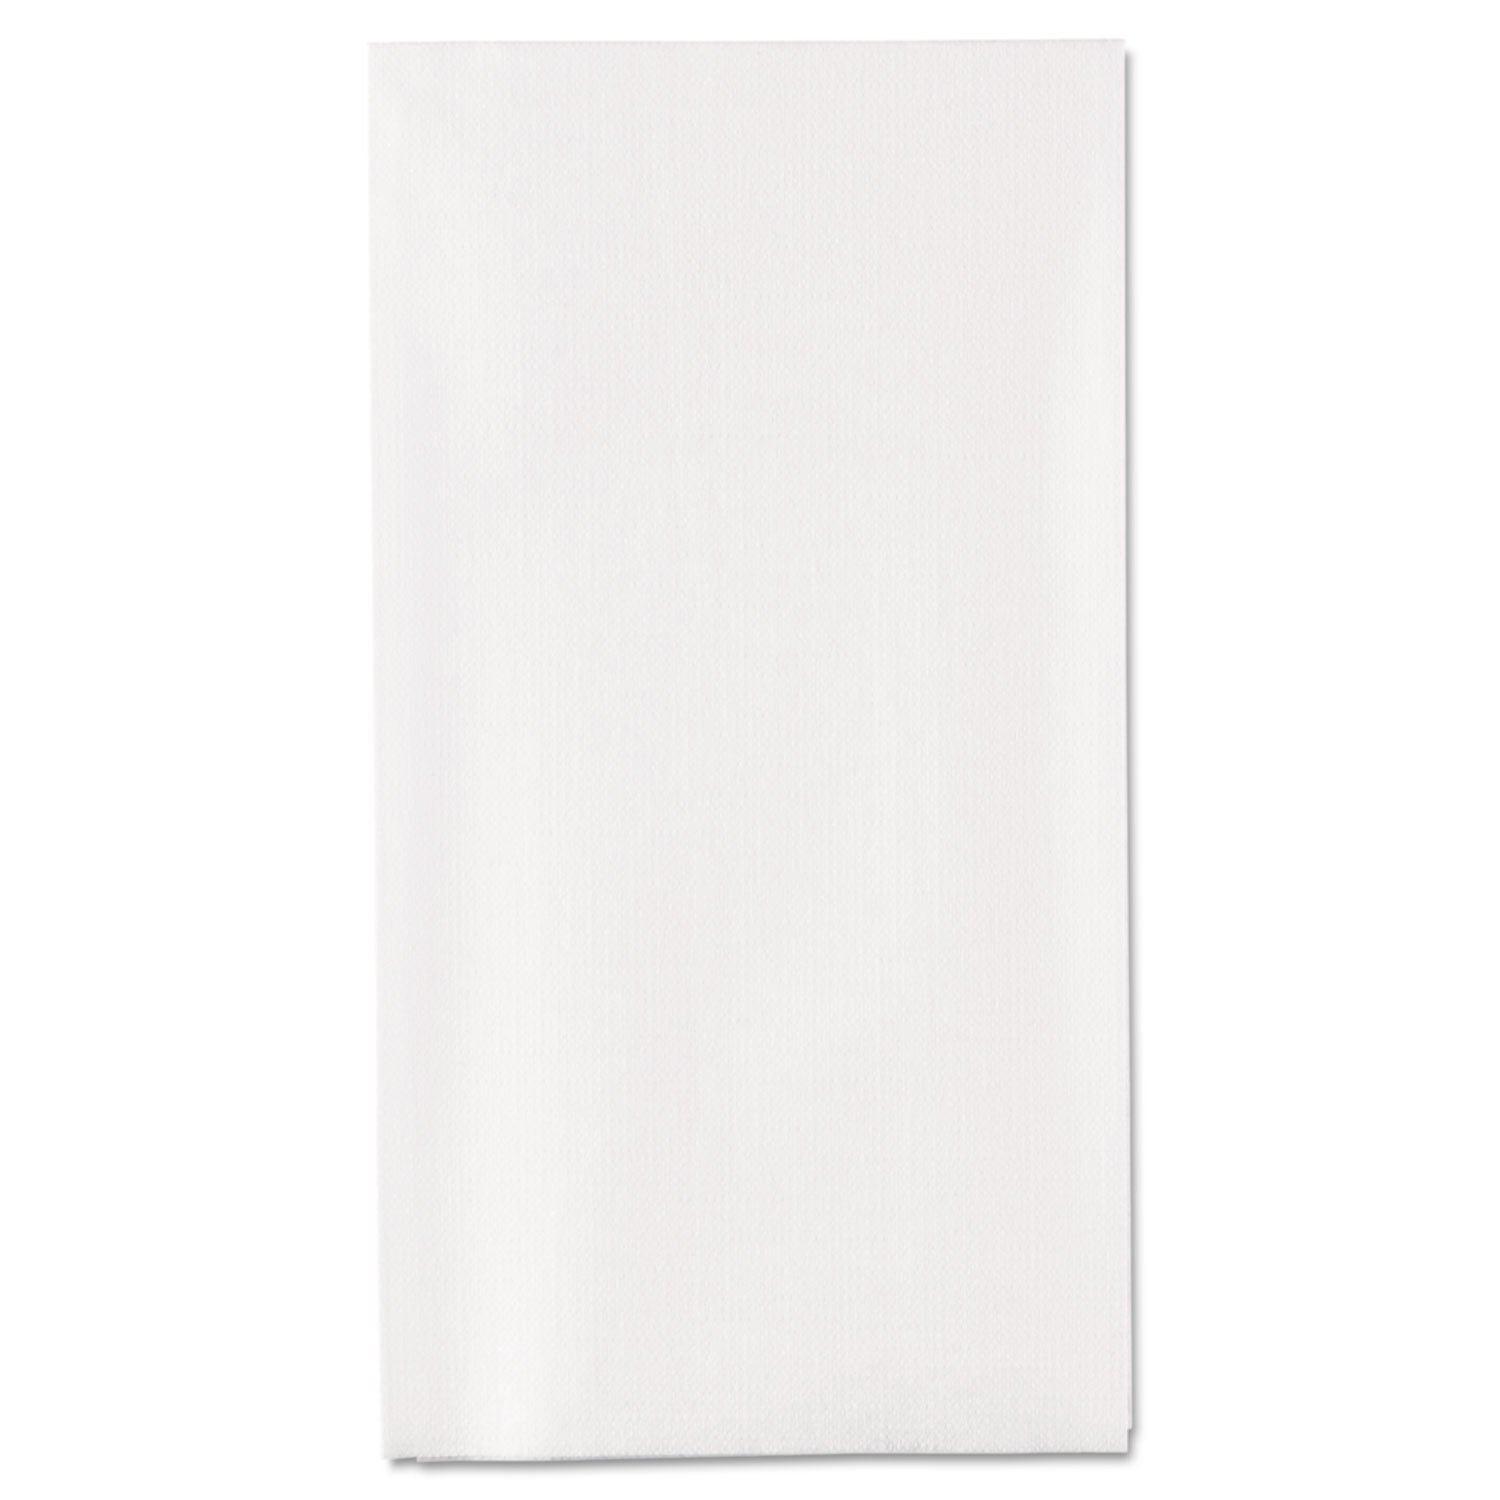 Georgia Pacific Professional 1/6-Fold Linen Replacement Towels, 13 x 17, White, 200/Box, 4 Boxes/Carton